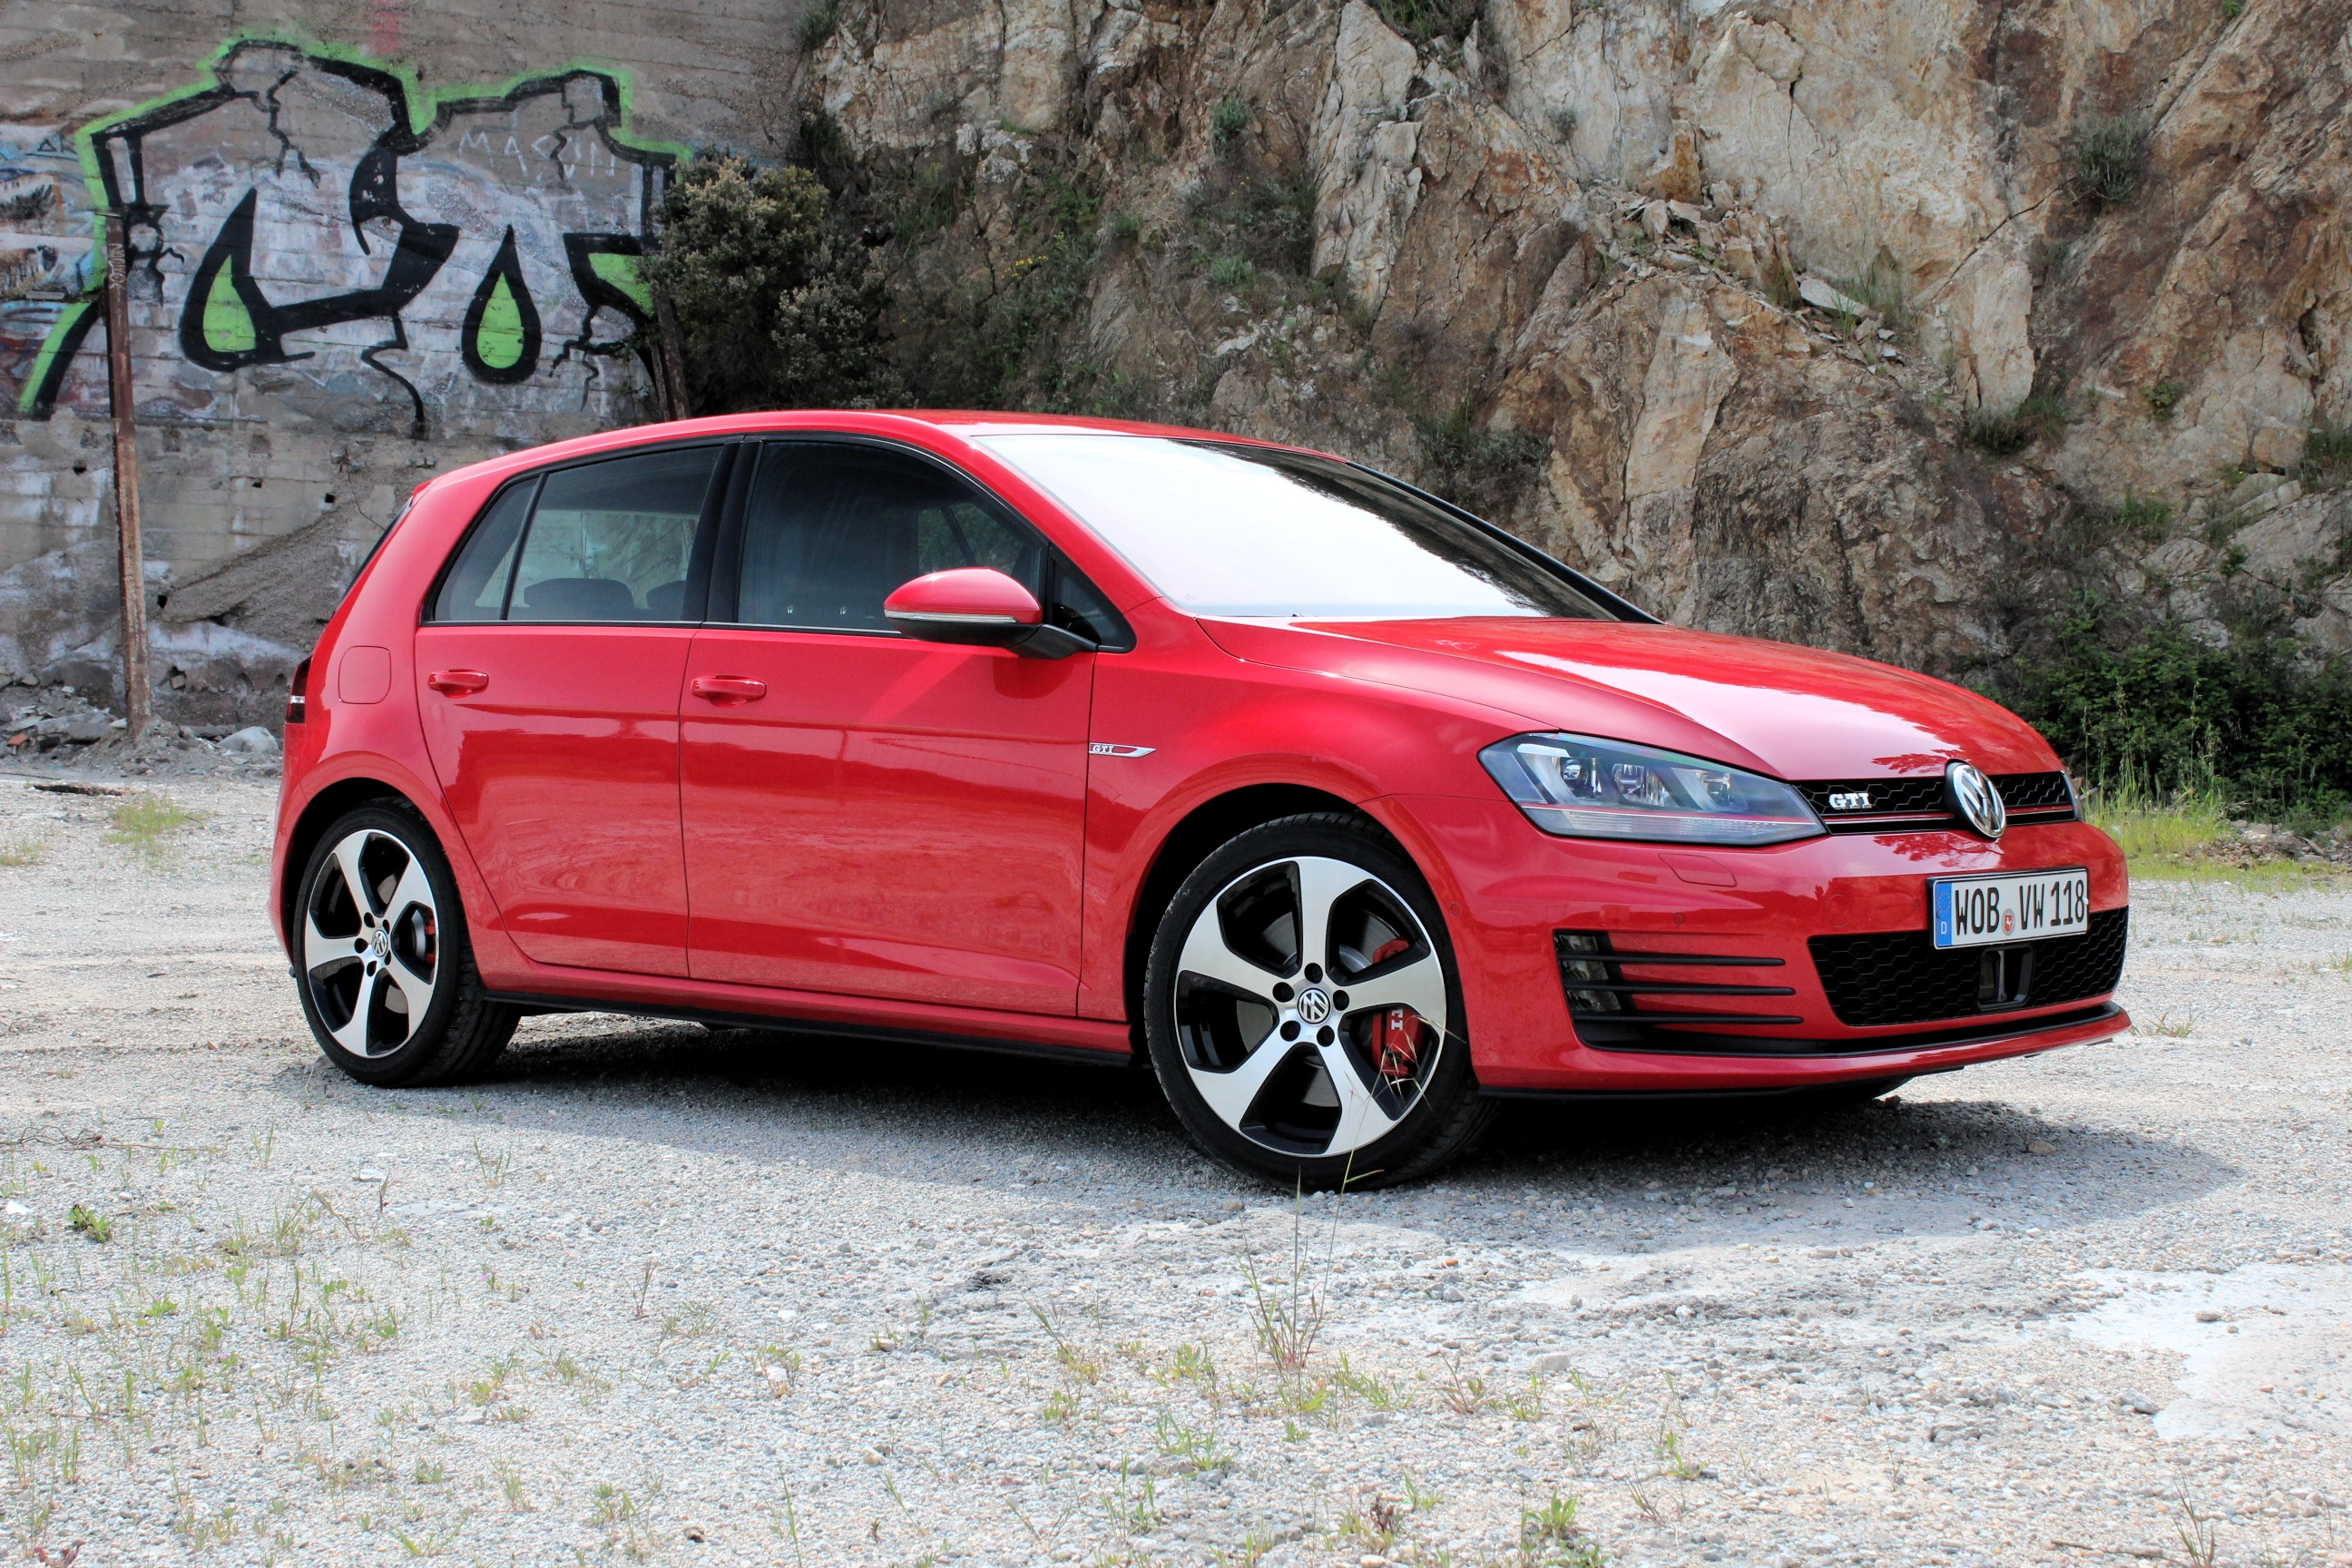 full gti volkswagen used specialty services ohio img listings